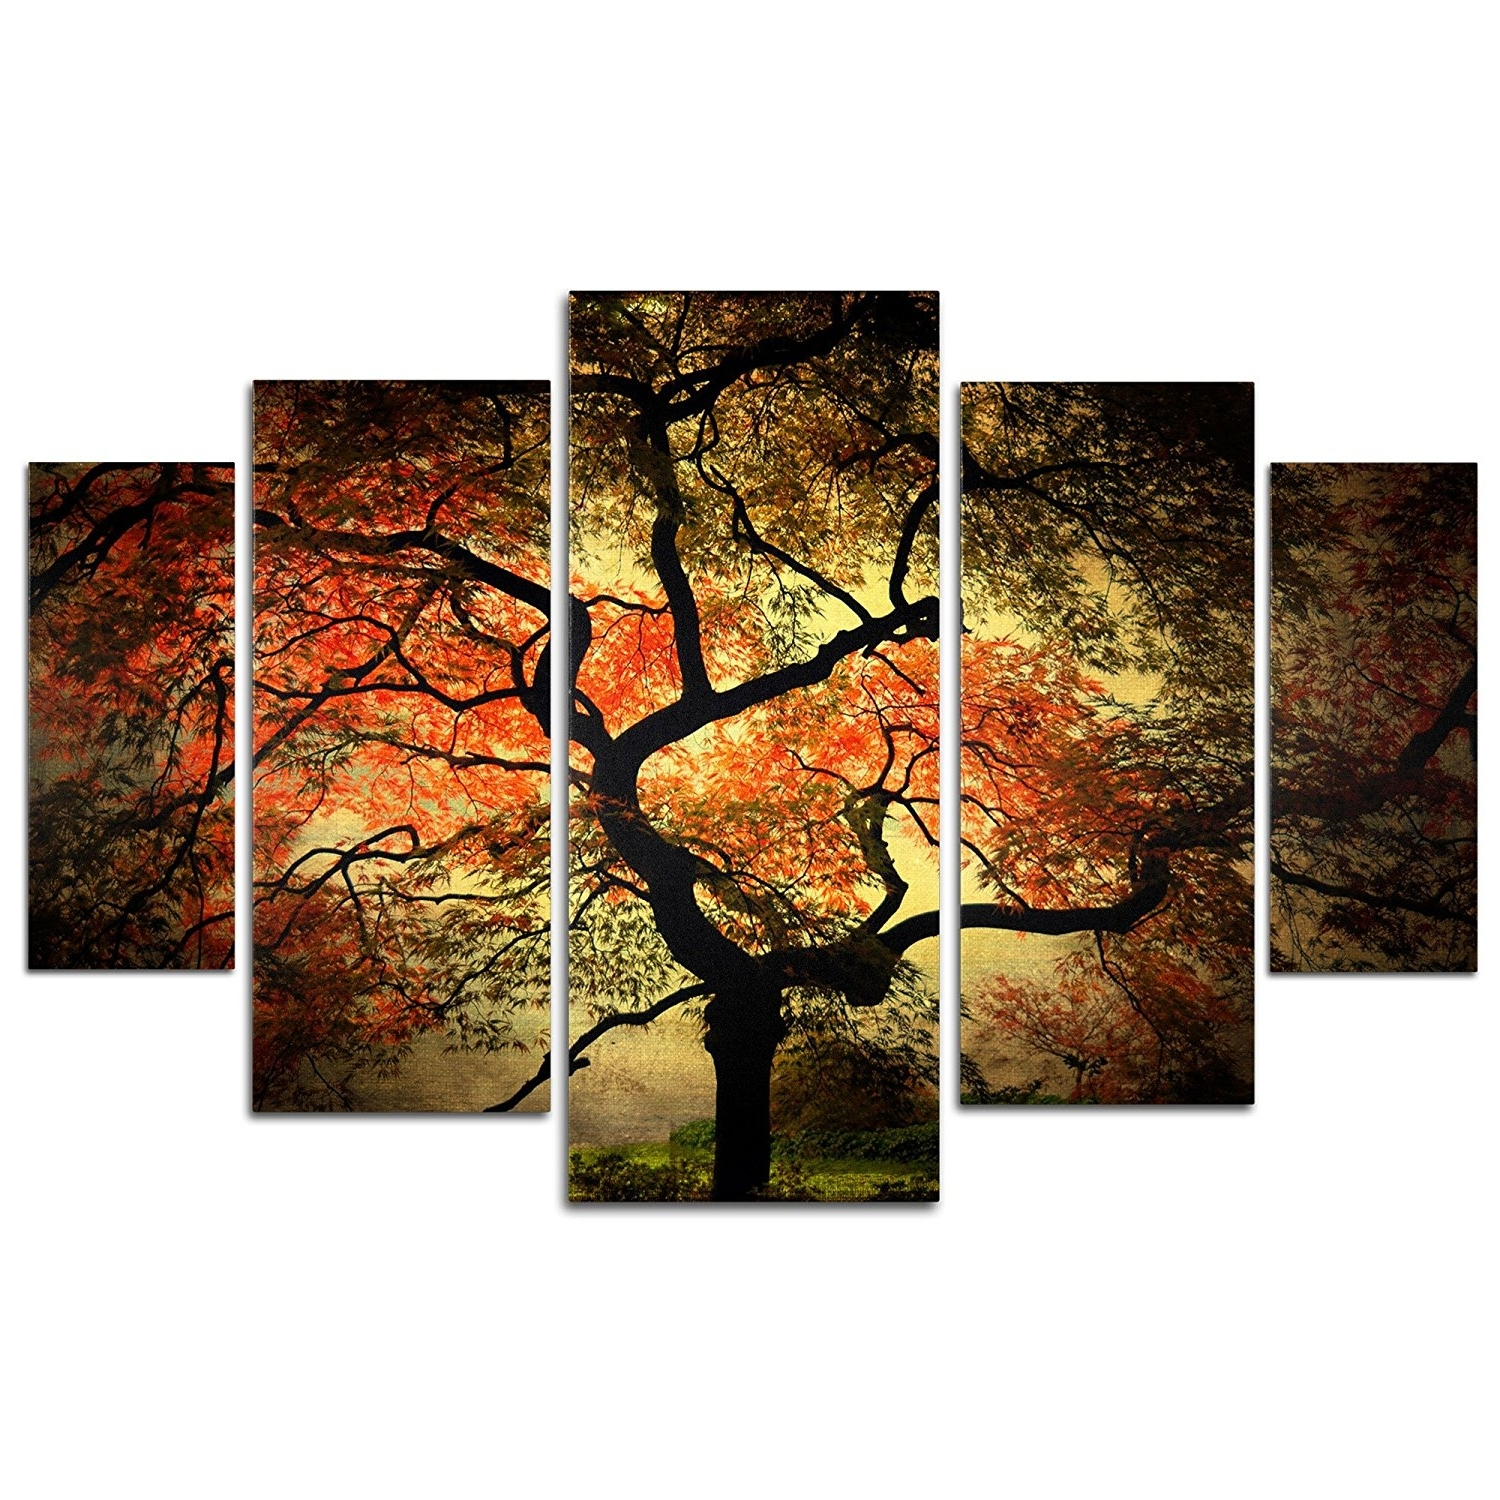 Newest Multi Panel Wall Art Intended For Bjinj Epic Panel Wall Art – Wall Decoration And Wall Art Ideas (View 2 of 15)